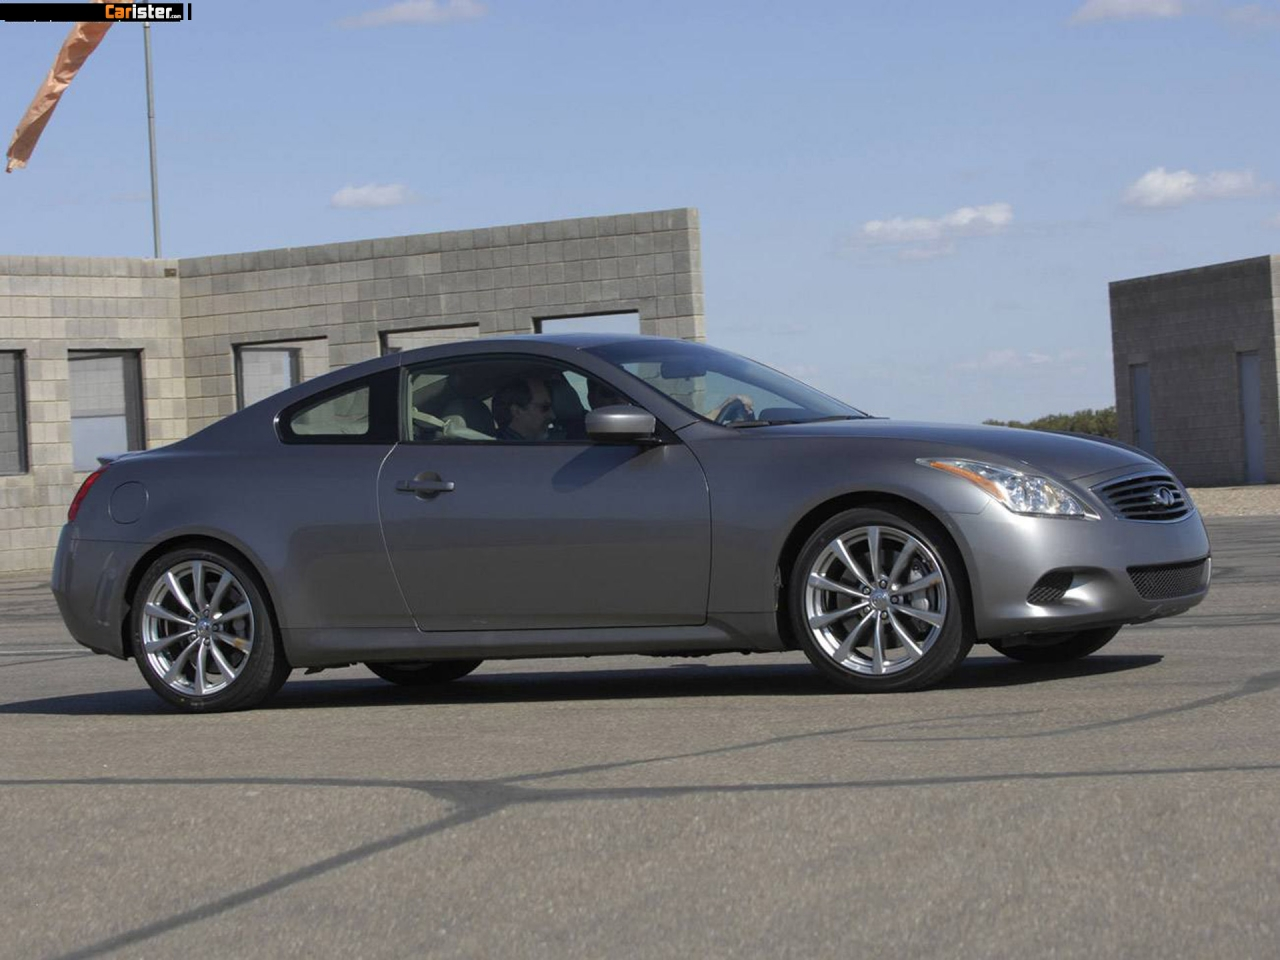 Infiniti G37 Coupe 2007 - Photo 11 - Taille: 1280x960